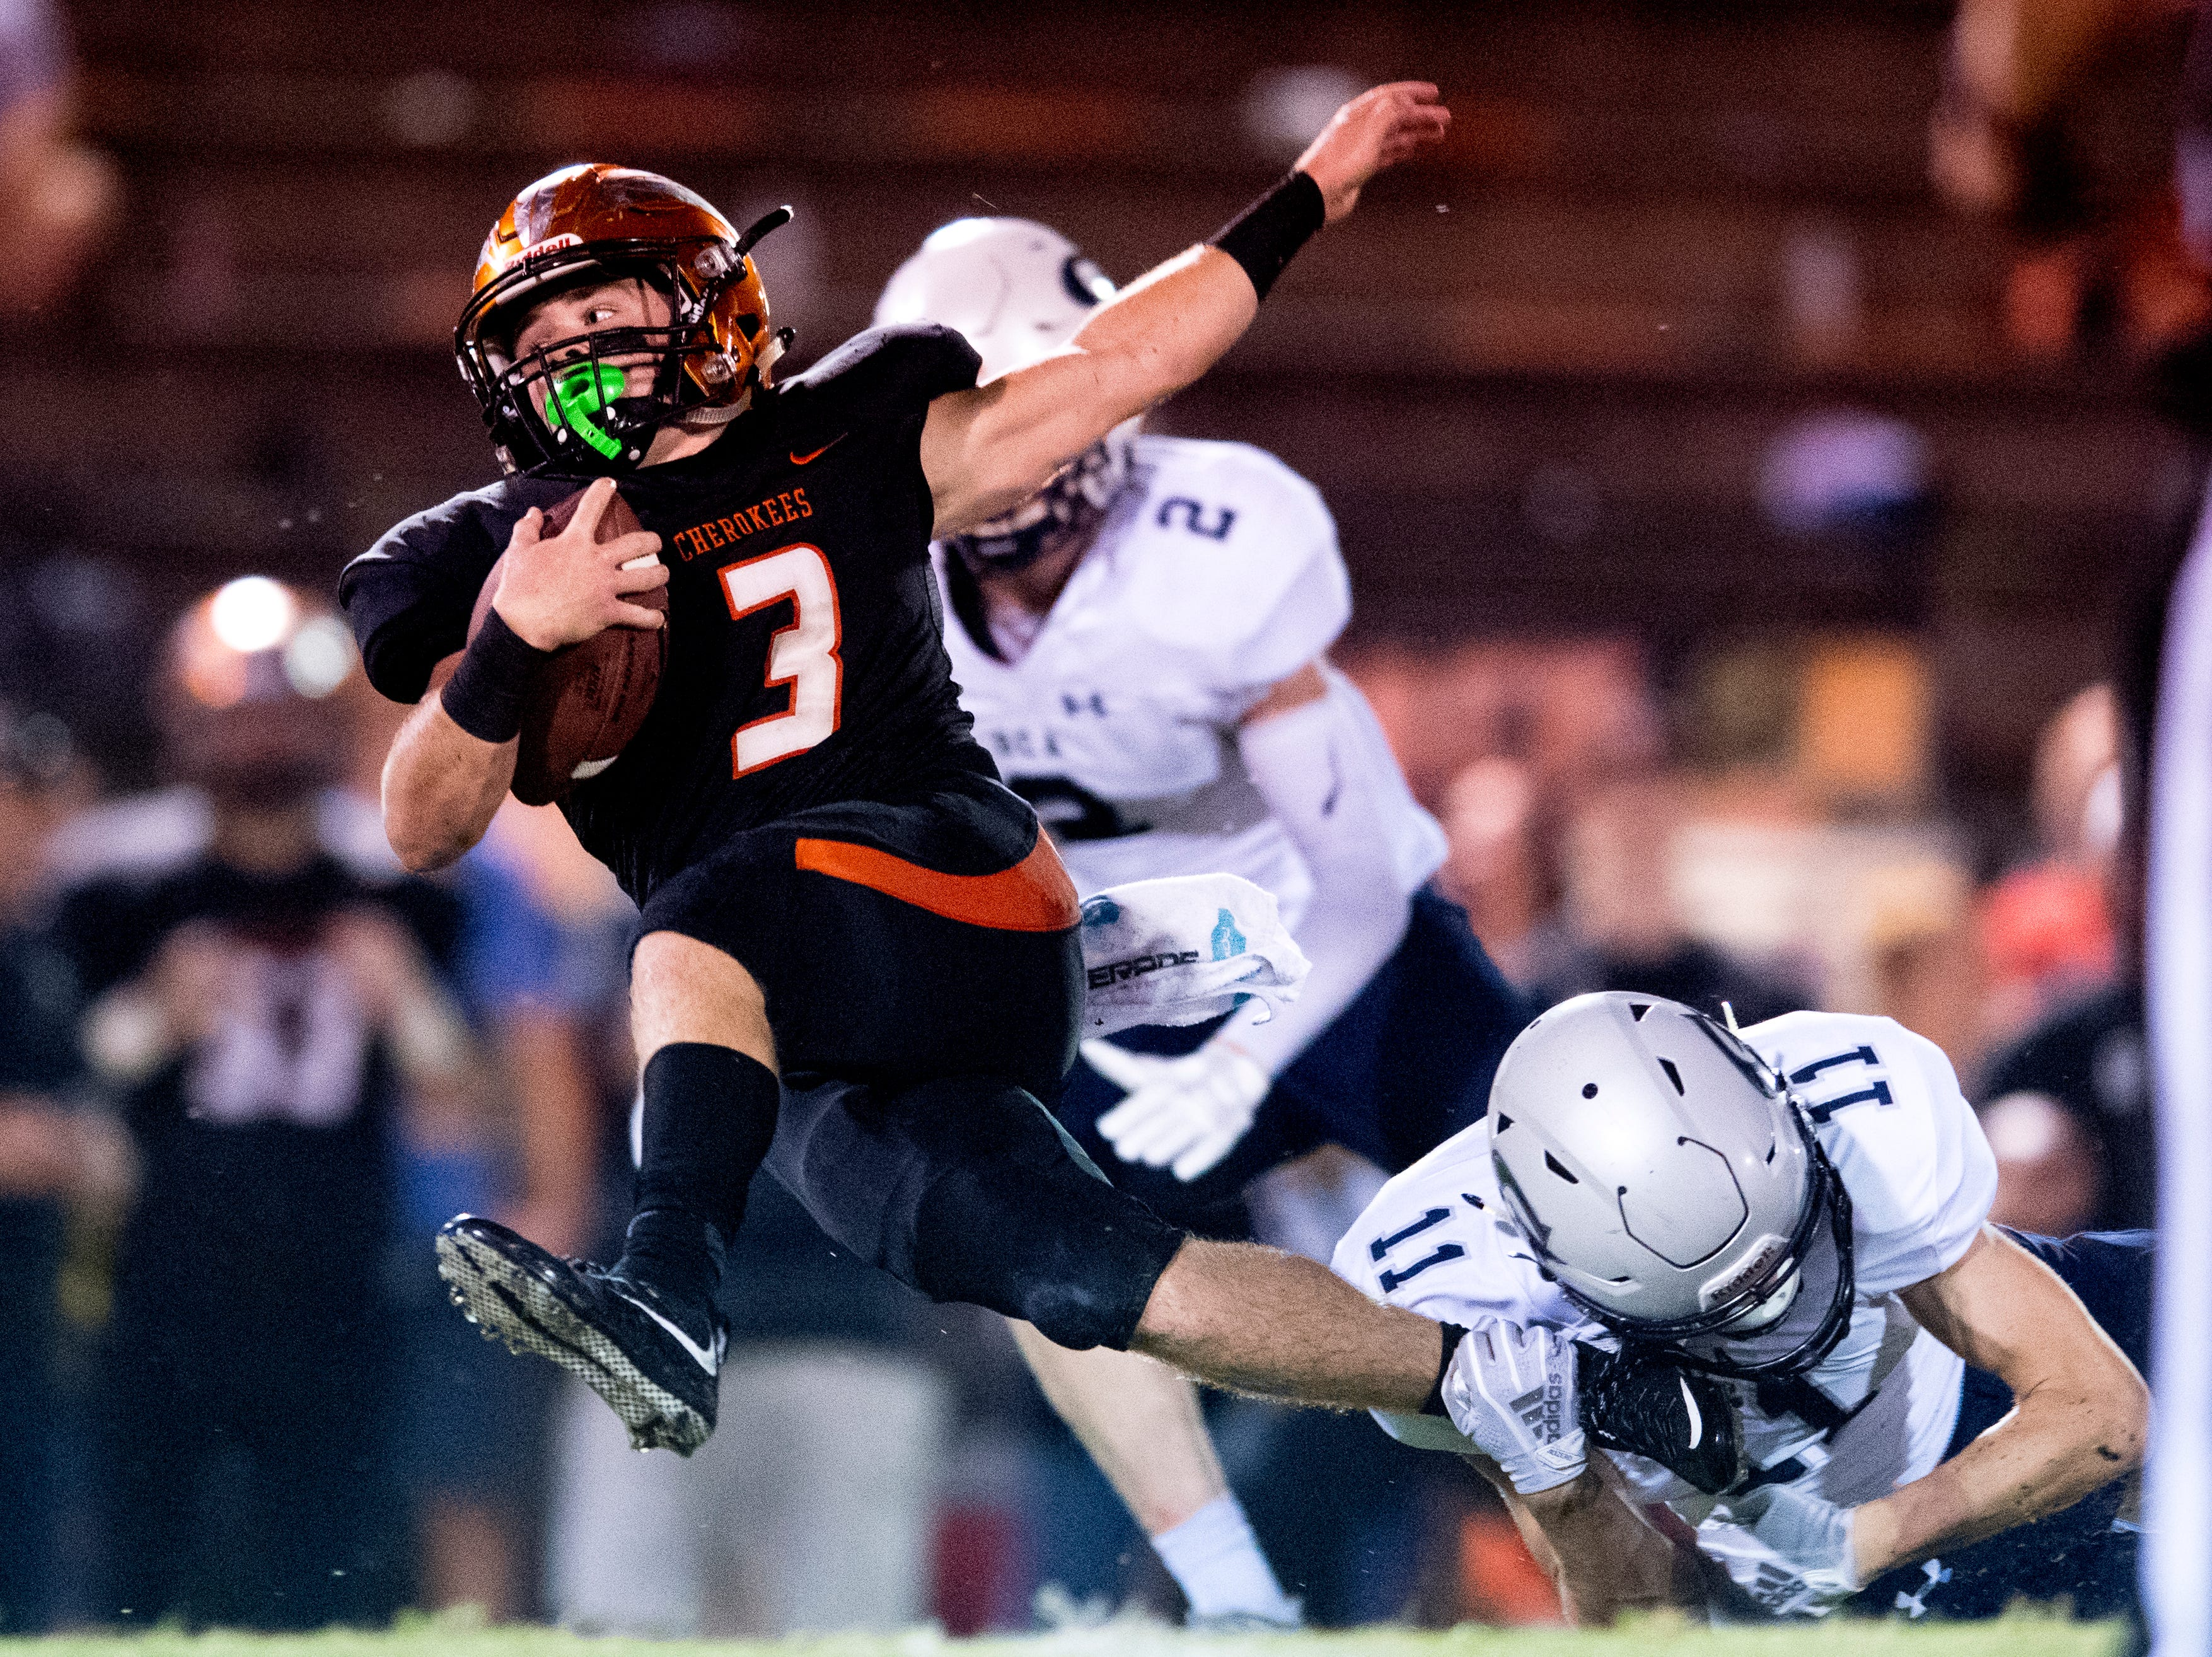 Greenback's Bryce Hanley (3) is tripped up by Grace Christian's Jared Long (11) during a football game between Greenback and Grace Christian at Greenback High School in Greenback, Tennessee on Thursday, September 20, 2018.